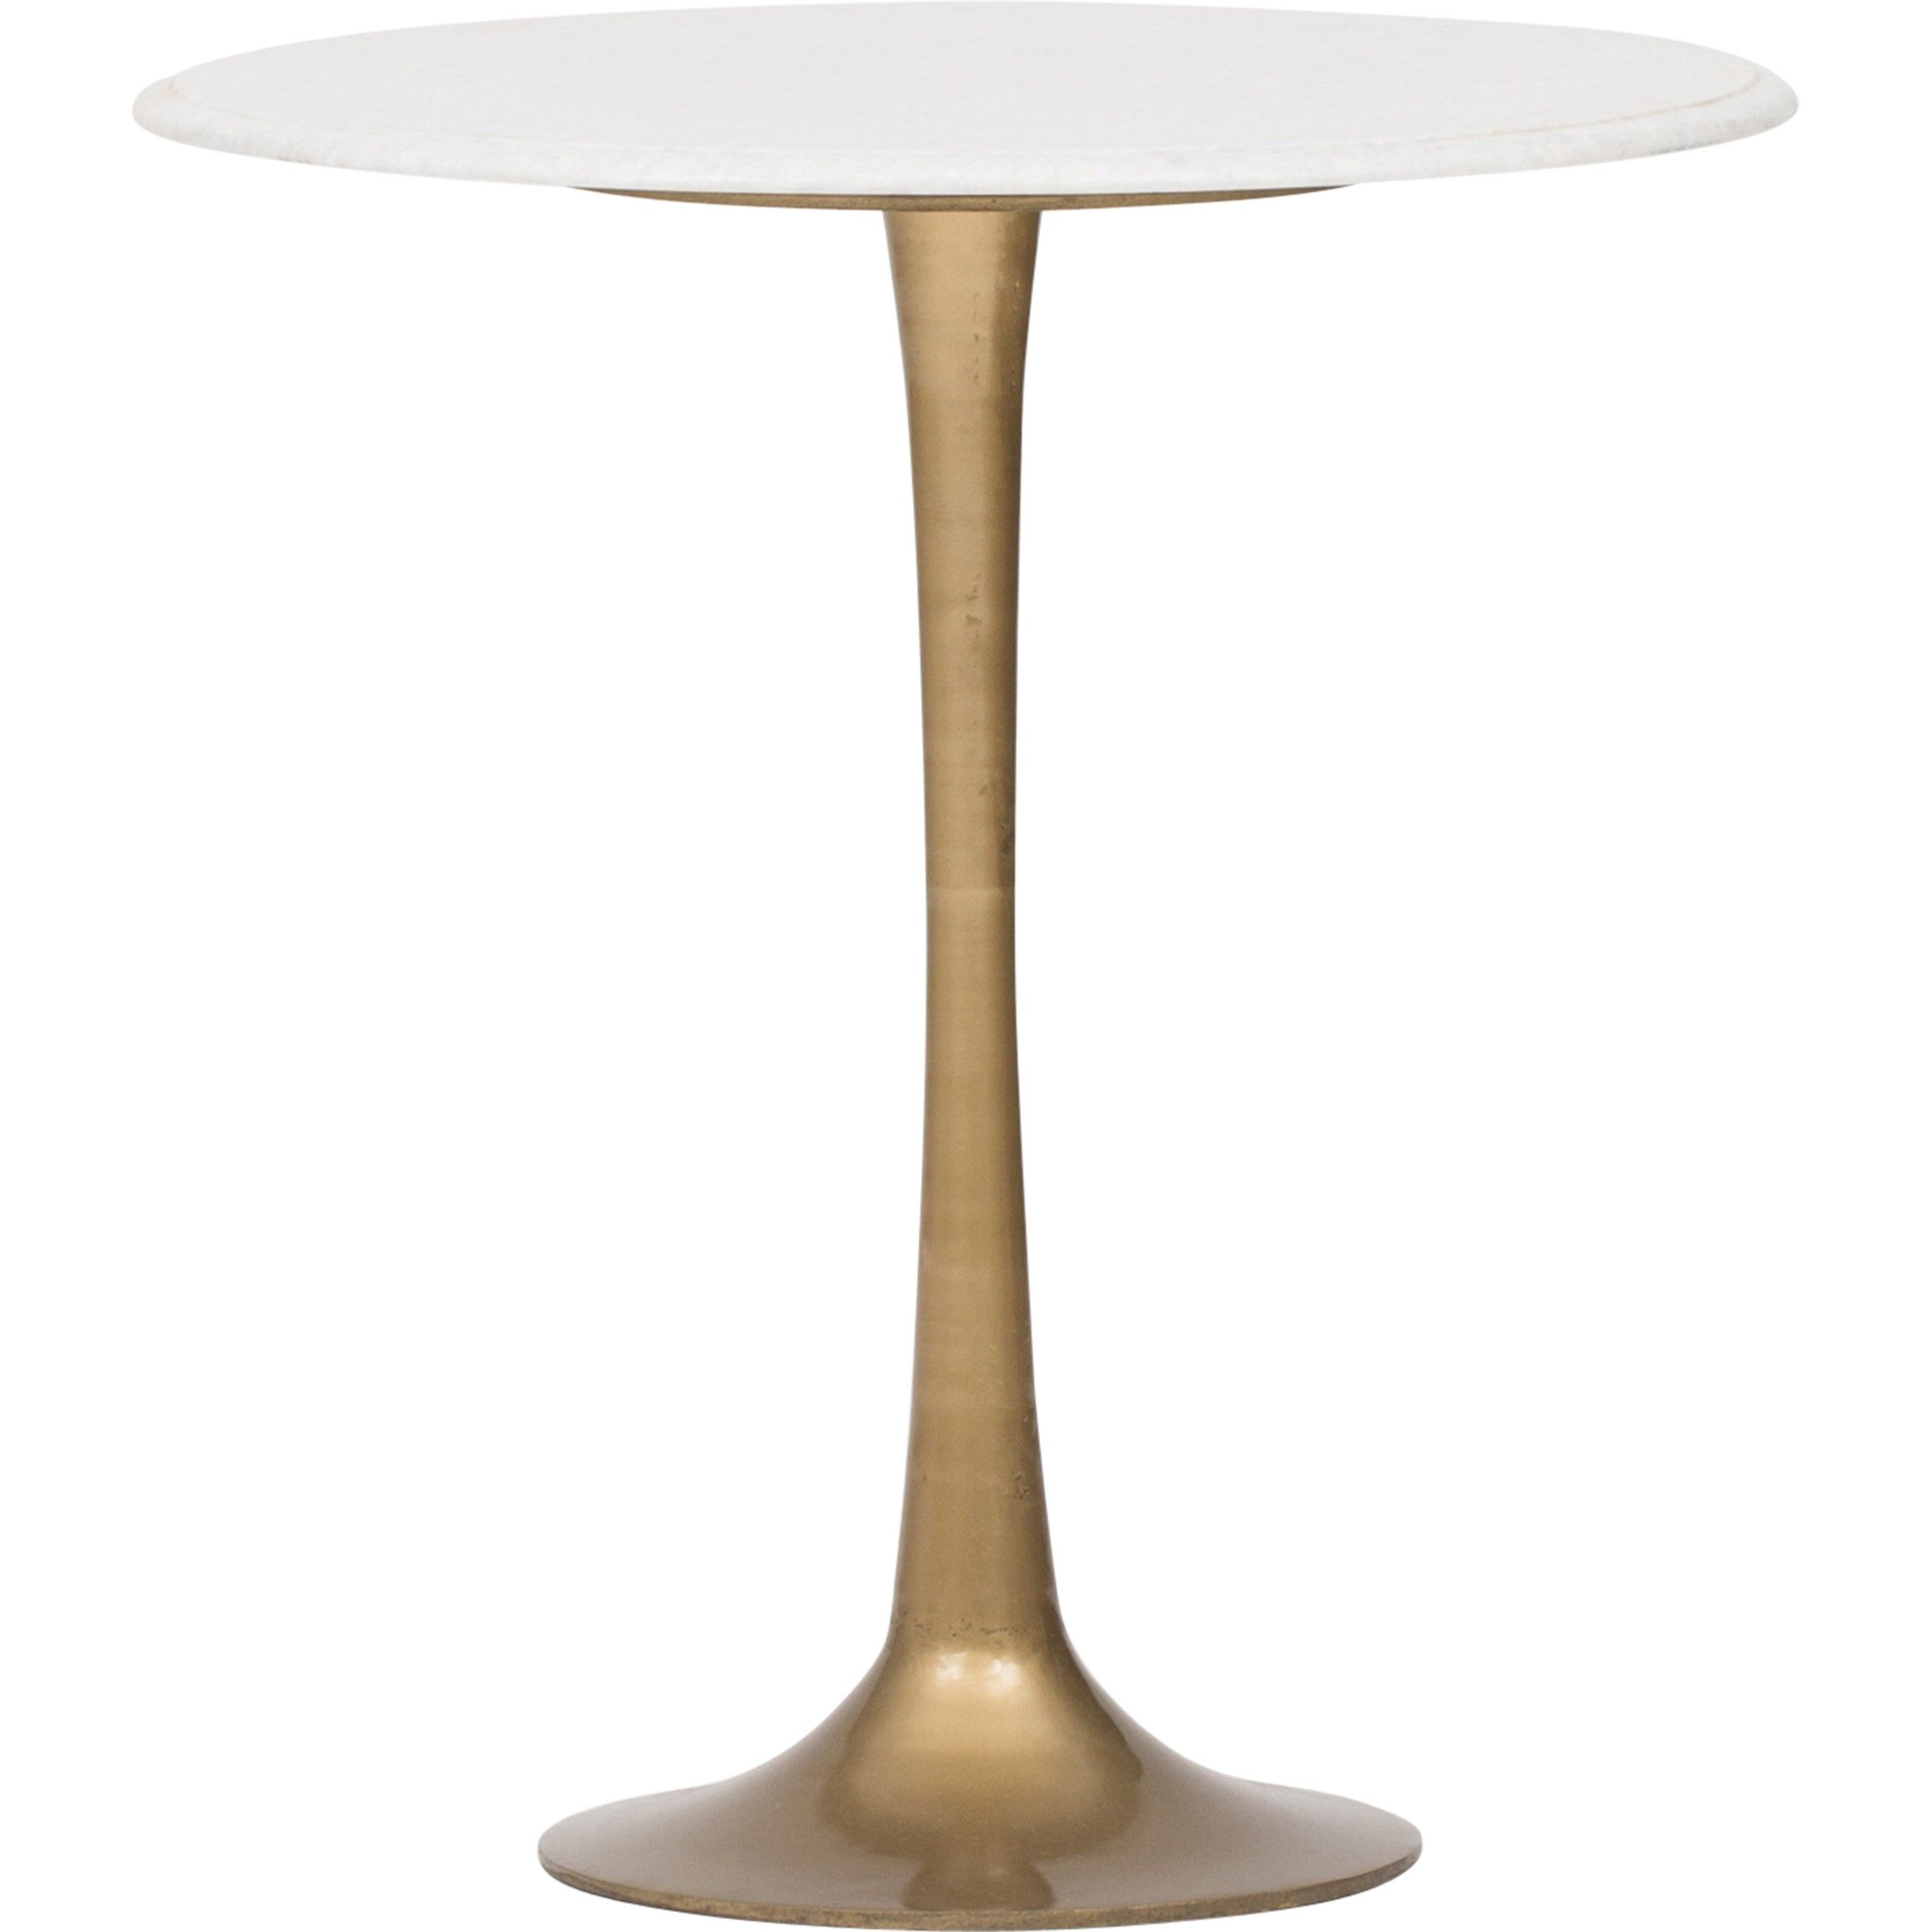 tulip side table white marble living room inspiration accent with wood trestle dining silver tray outdoor furniture sets uttermost laton mirrored patterned lamp shades small desk